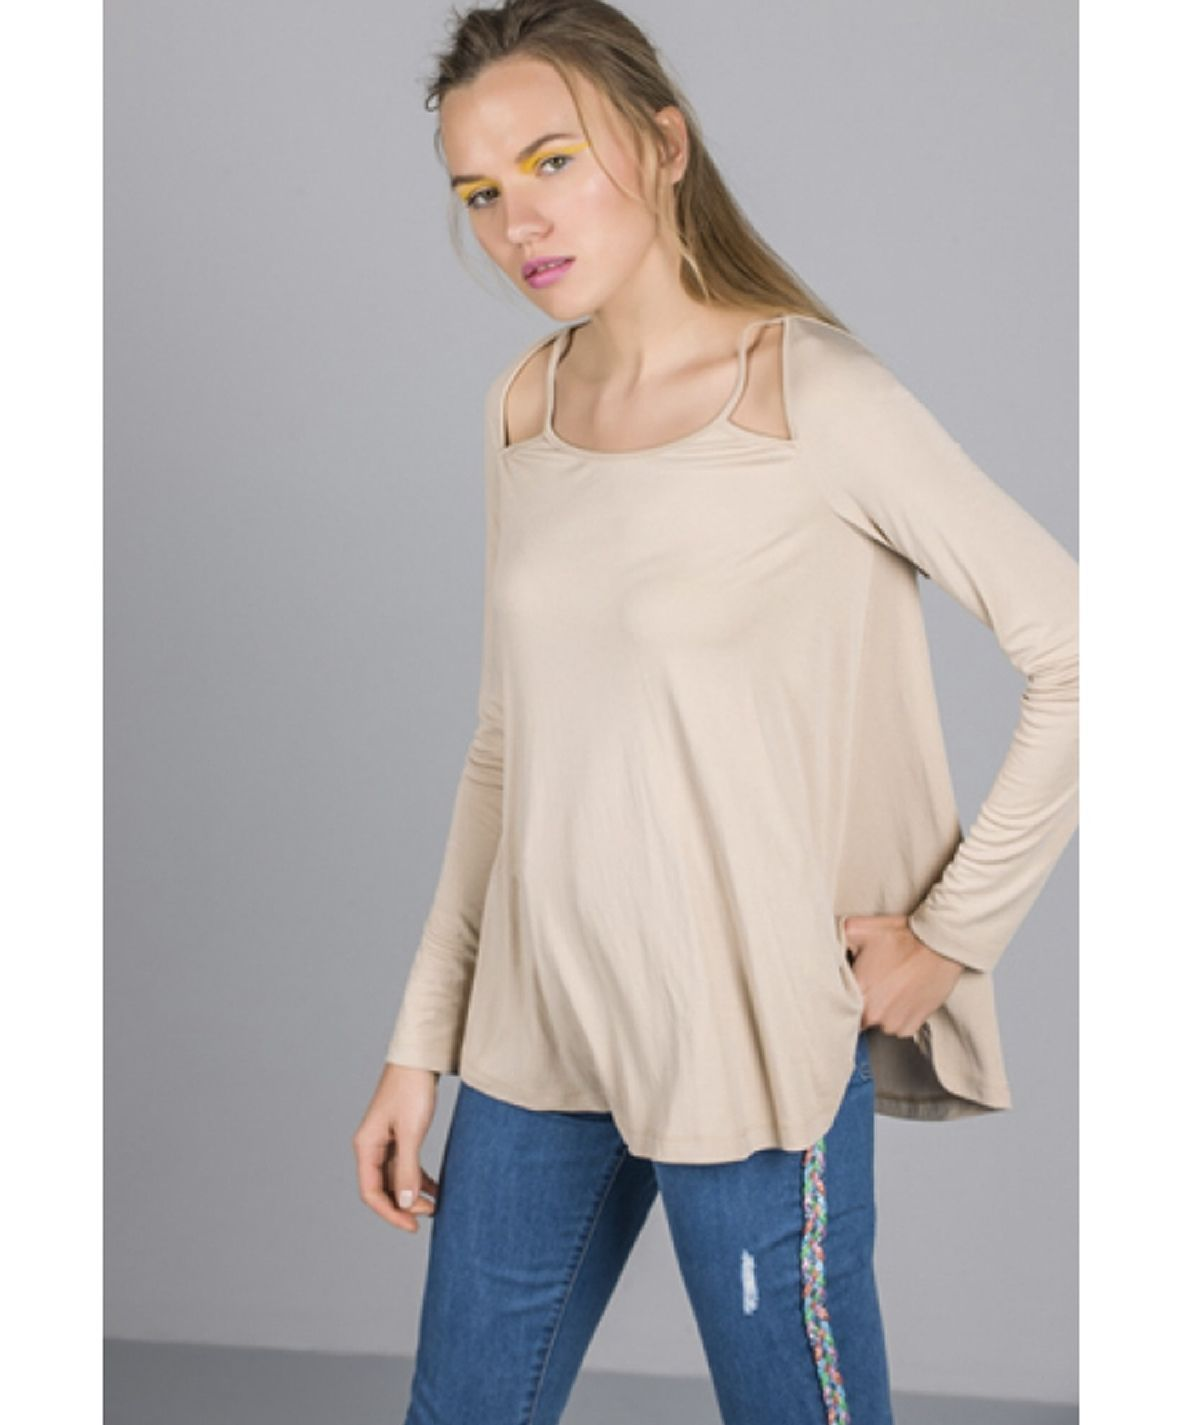 Blouse with cut-out neckline